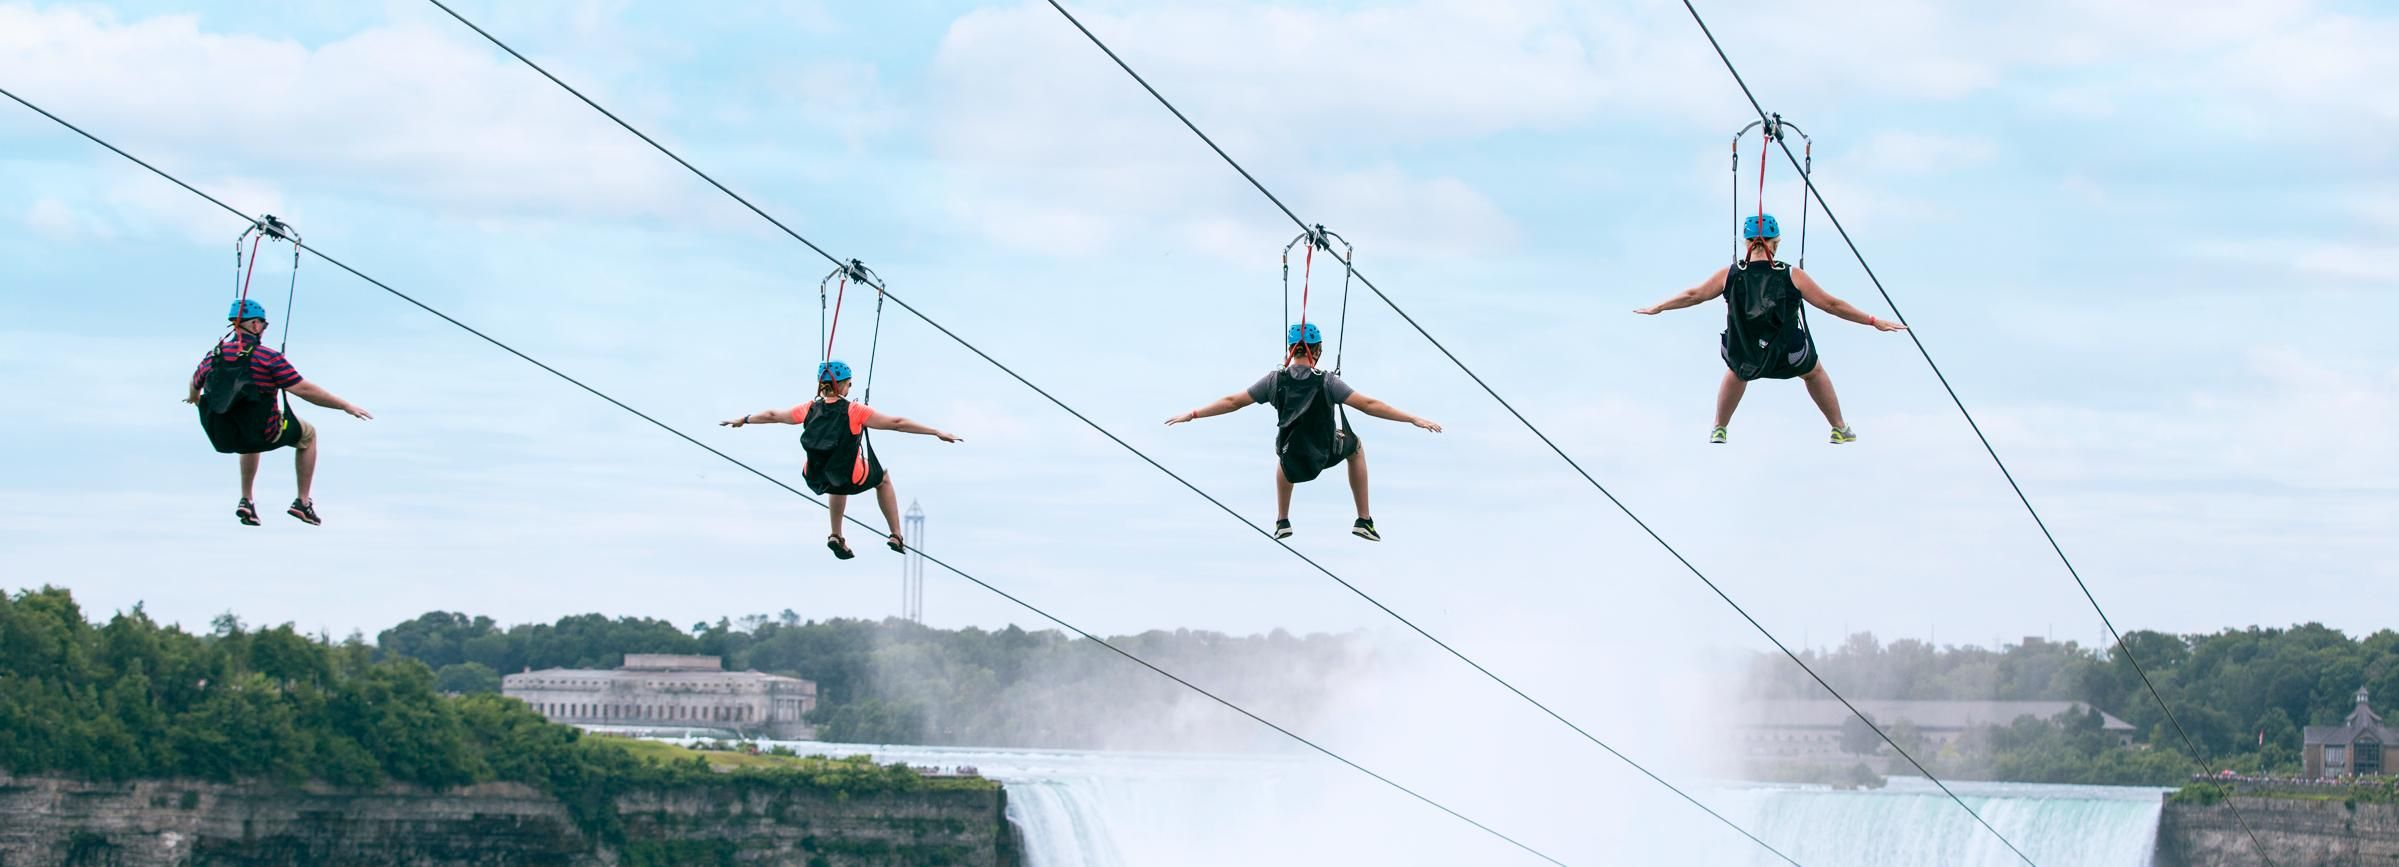 Niagara Falls, Canada: Zipline to The Falls